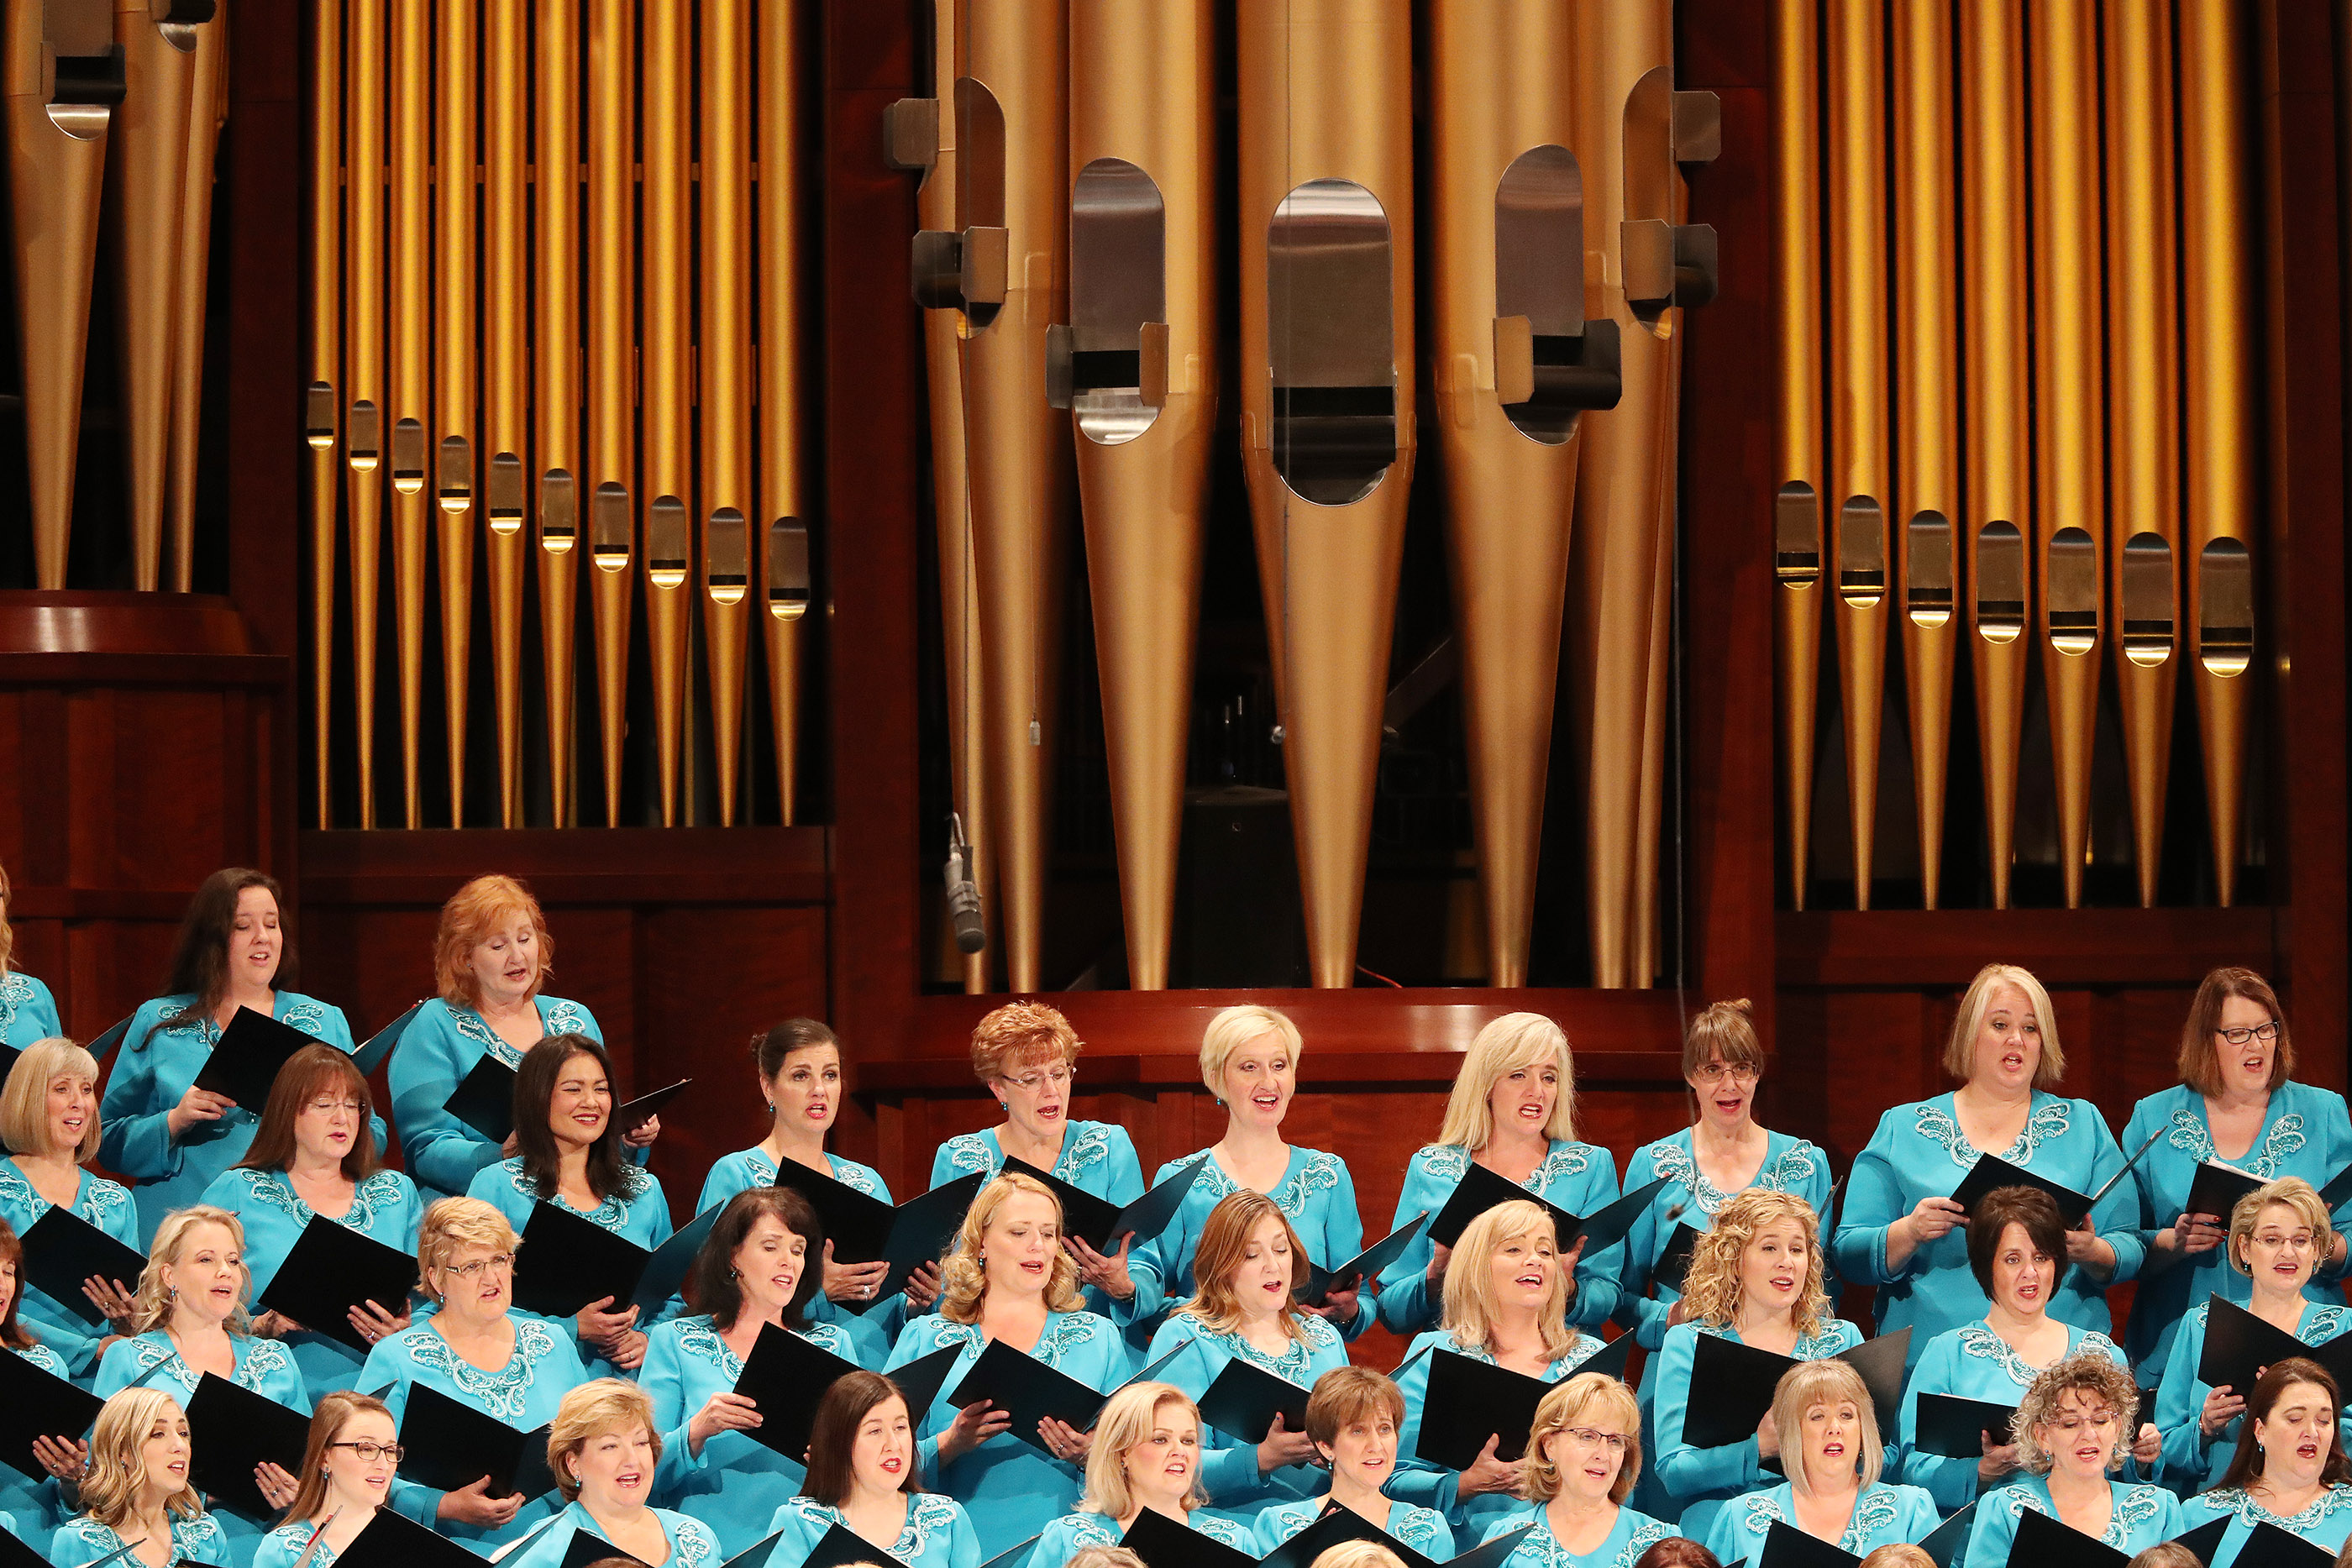 The Tabernacle Choir at Temple Square sings during the Sunday afternoon seassion of the 188th Semiannual General Conference of The Church of Jesus Christ of Latter-day Saints in the Conference Center in Salt Lake City on Sunday, Oct. 7, 2018.